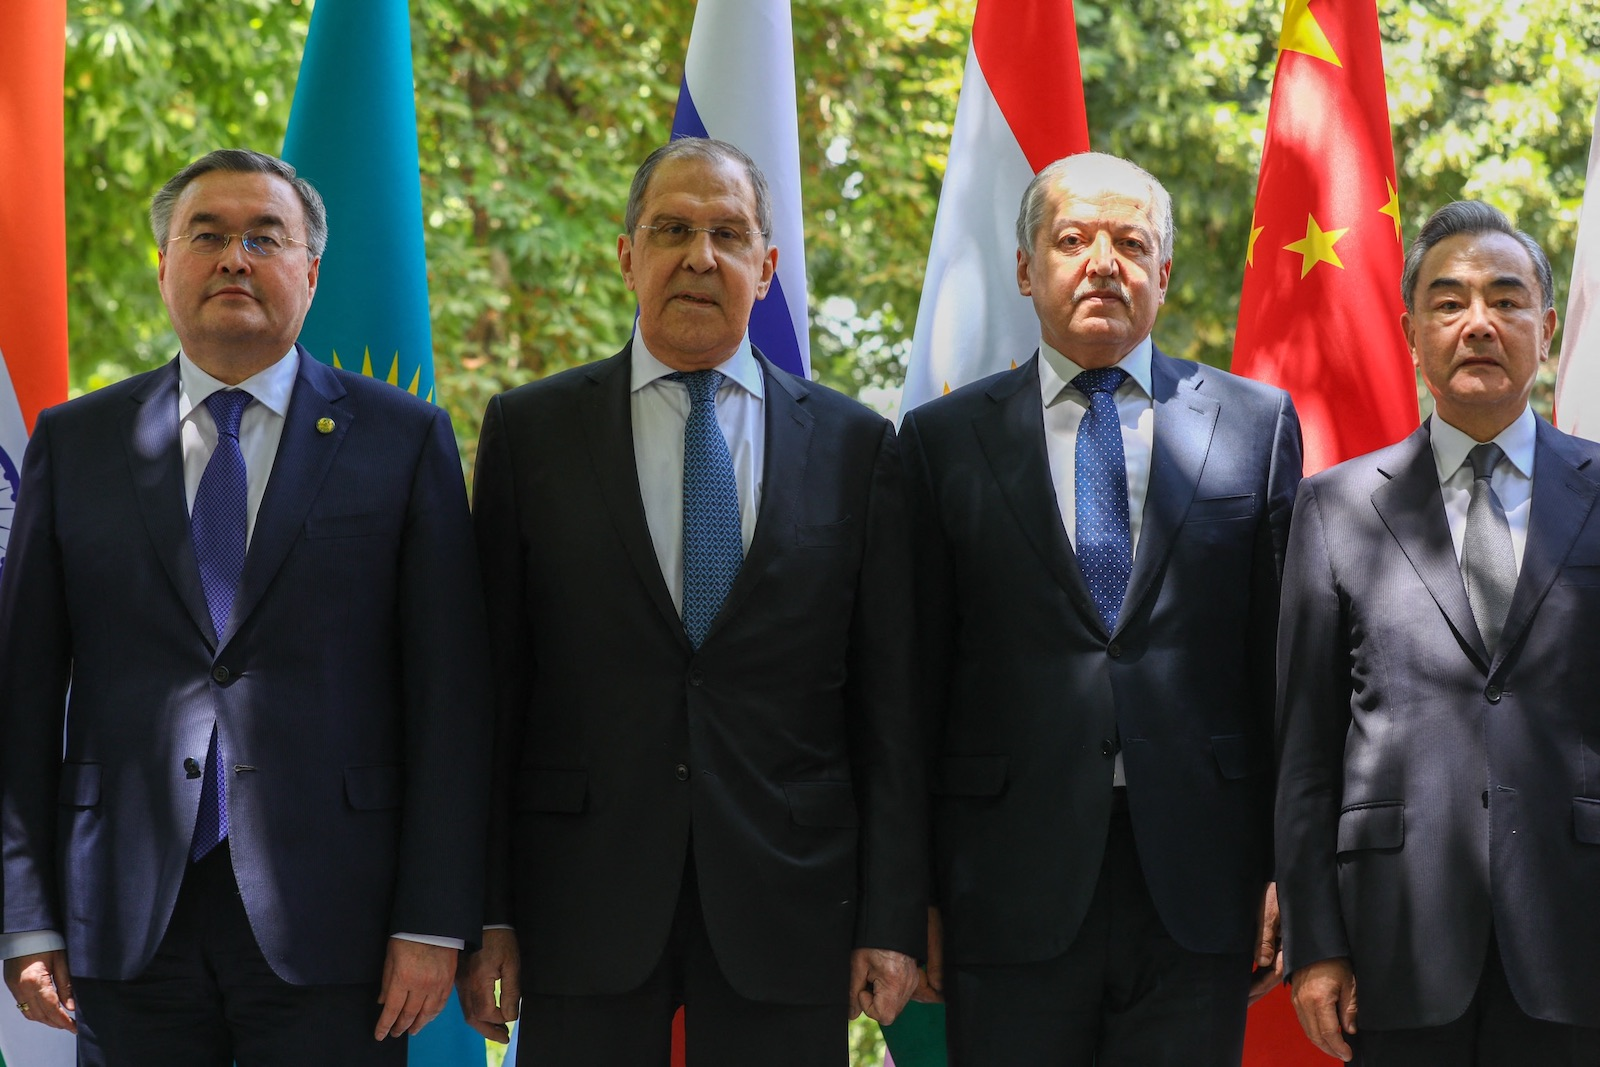 Kazakhstan's Foreign Minister Mukhtar Tileuberdi, Russian Foreign Minister Sergey Lavrov, Tajik Foreign Minister Sirojiddin Muhriddin and Chinese Foreign Minister Wang Yi pose for a family photo before a meeting of Shanghai Cooperation Organization (SCO) Contact Group on Afghanistan, in Dushanbe, Tajikistan. Photo: Russian Foreign Ministry / Sputnik via AFP